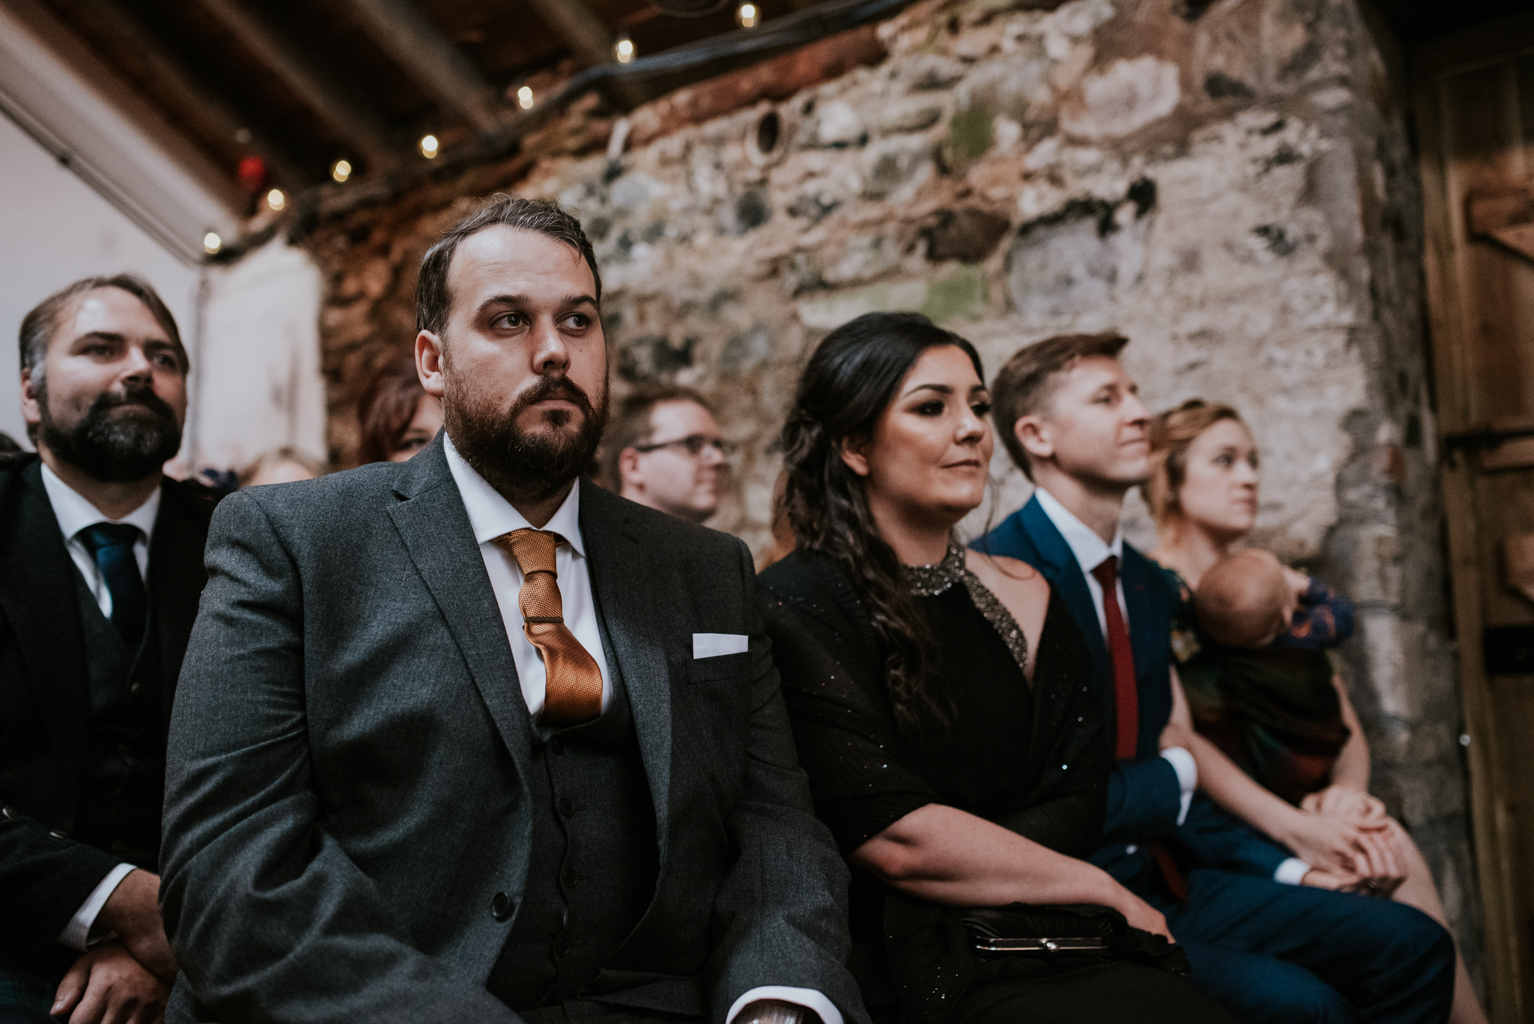 Guests sits in the ceremony room at Harelaw farm